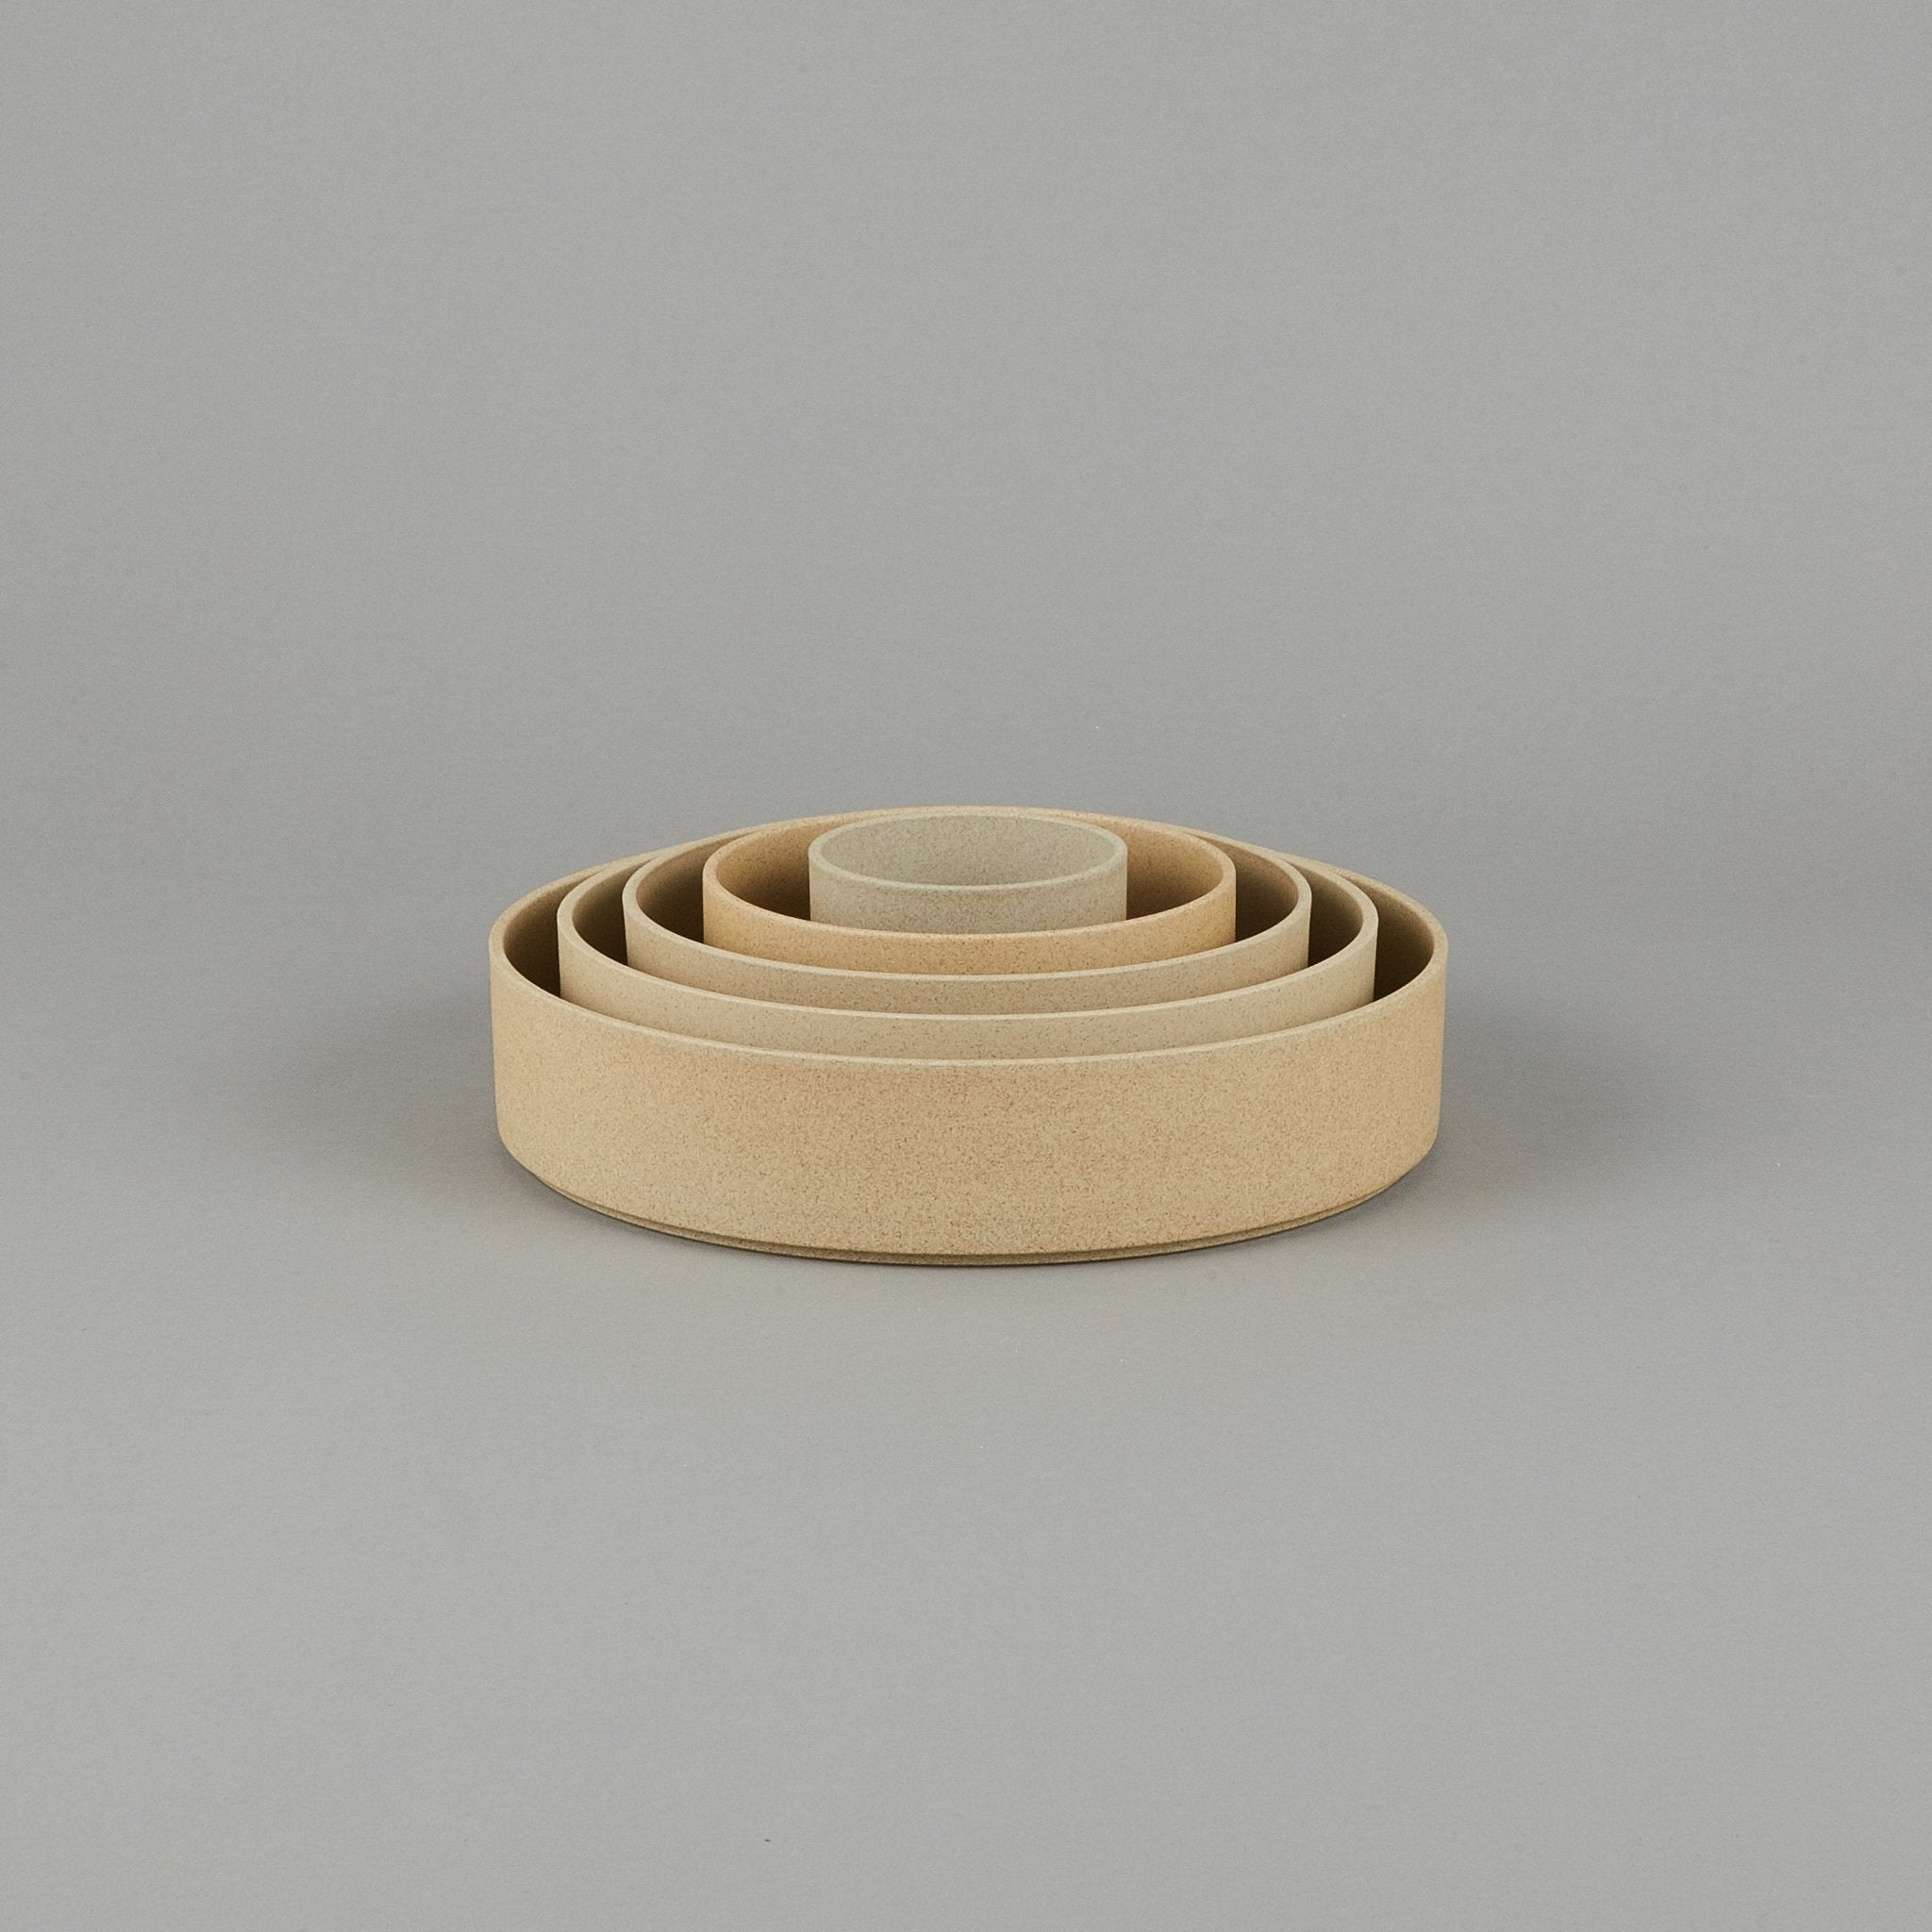 "HP009 - Bowl Natural ø 7.3/8"" - tortoise general store"